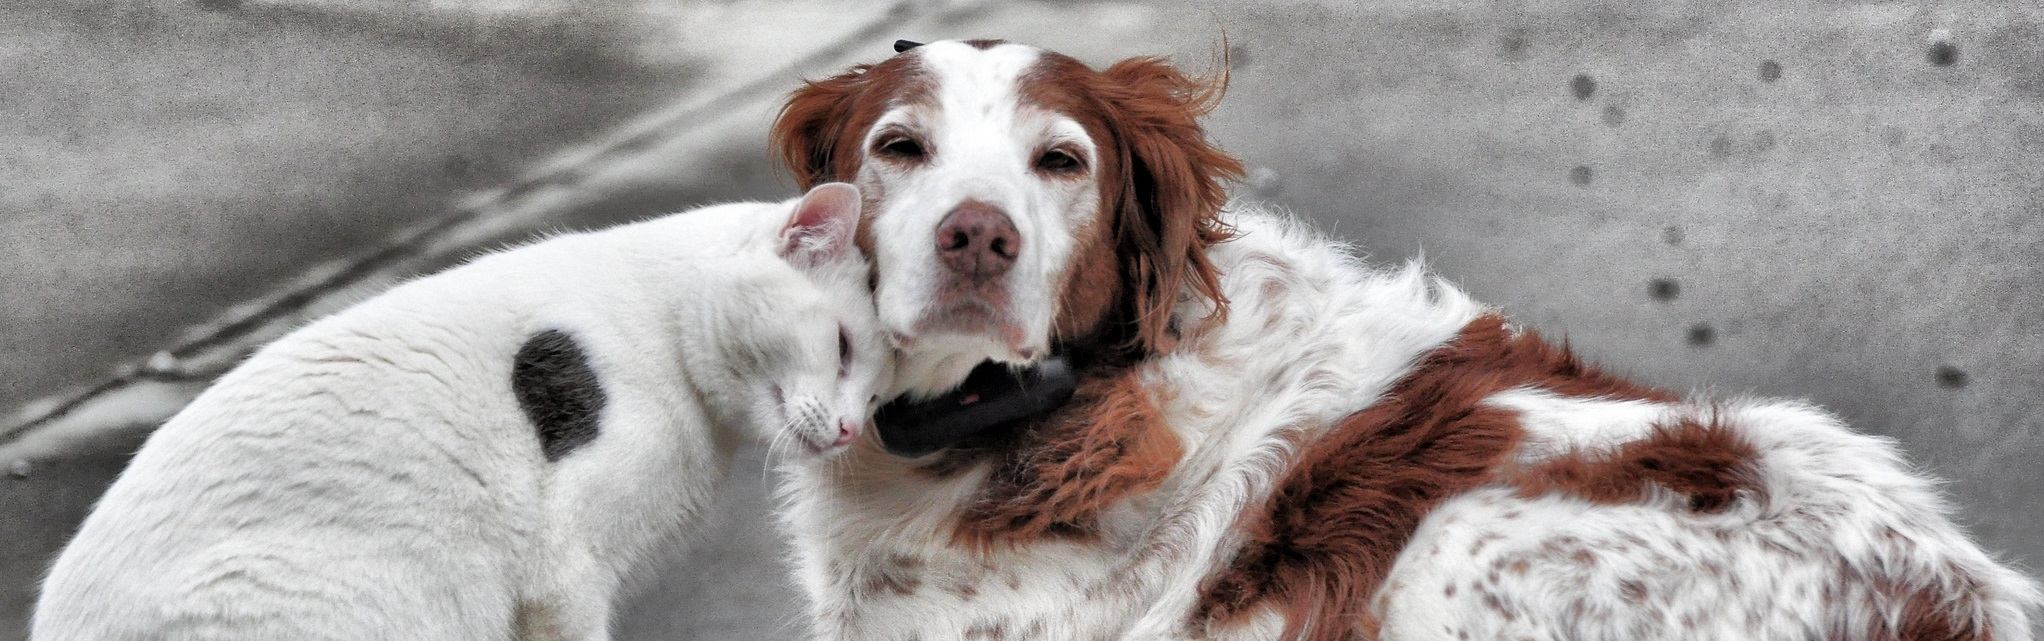 dog with red spots and cat embracing